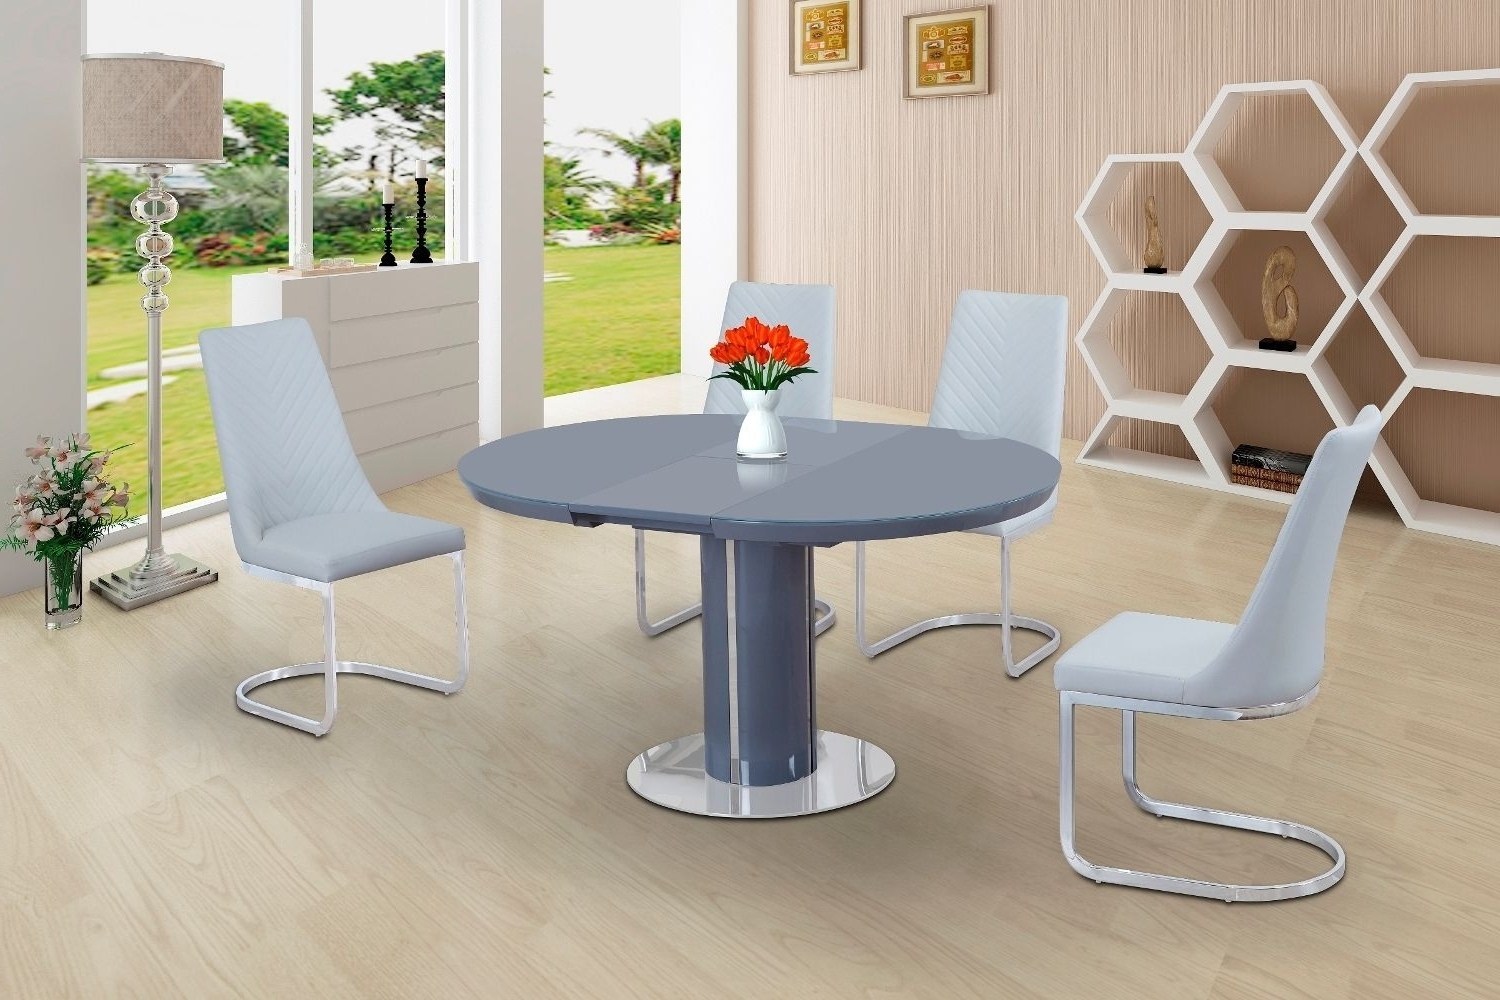 Eclipse Round Oval Gloss & Glass Extending 110 To 145 Cm Dining For Well Known Gloss Dining Tables Sets (Gallery 17 of 25)